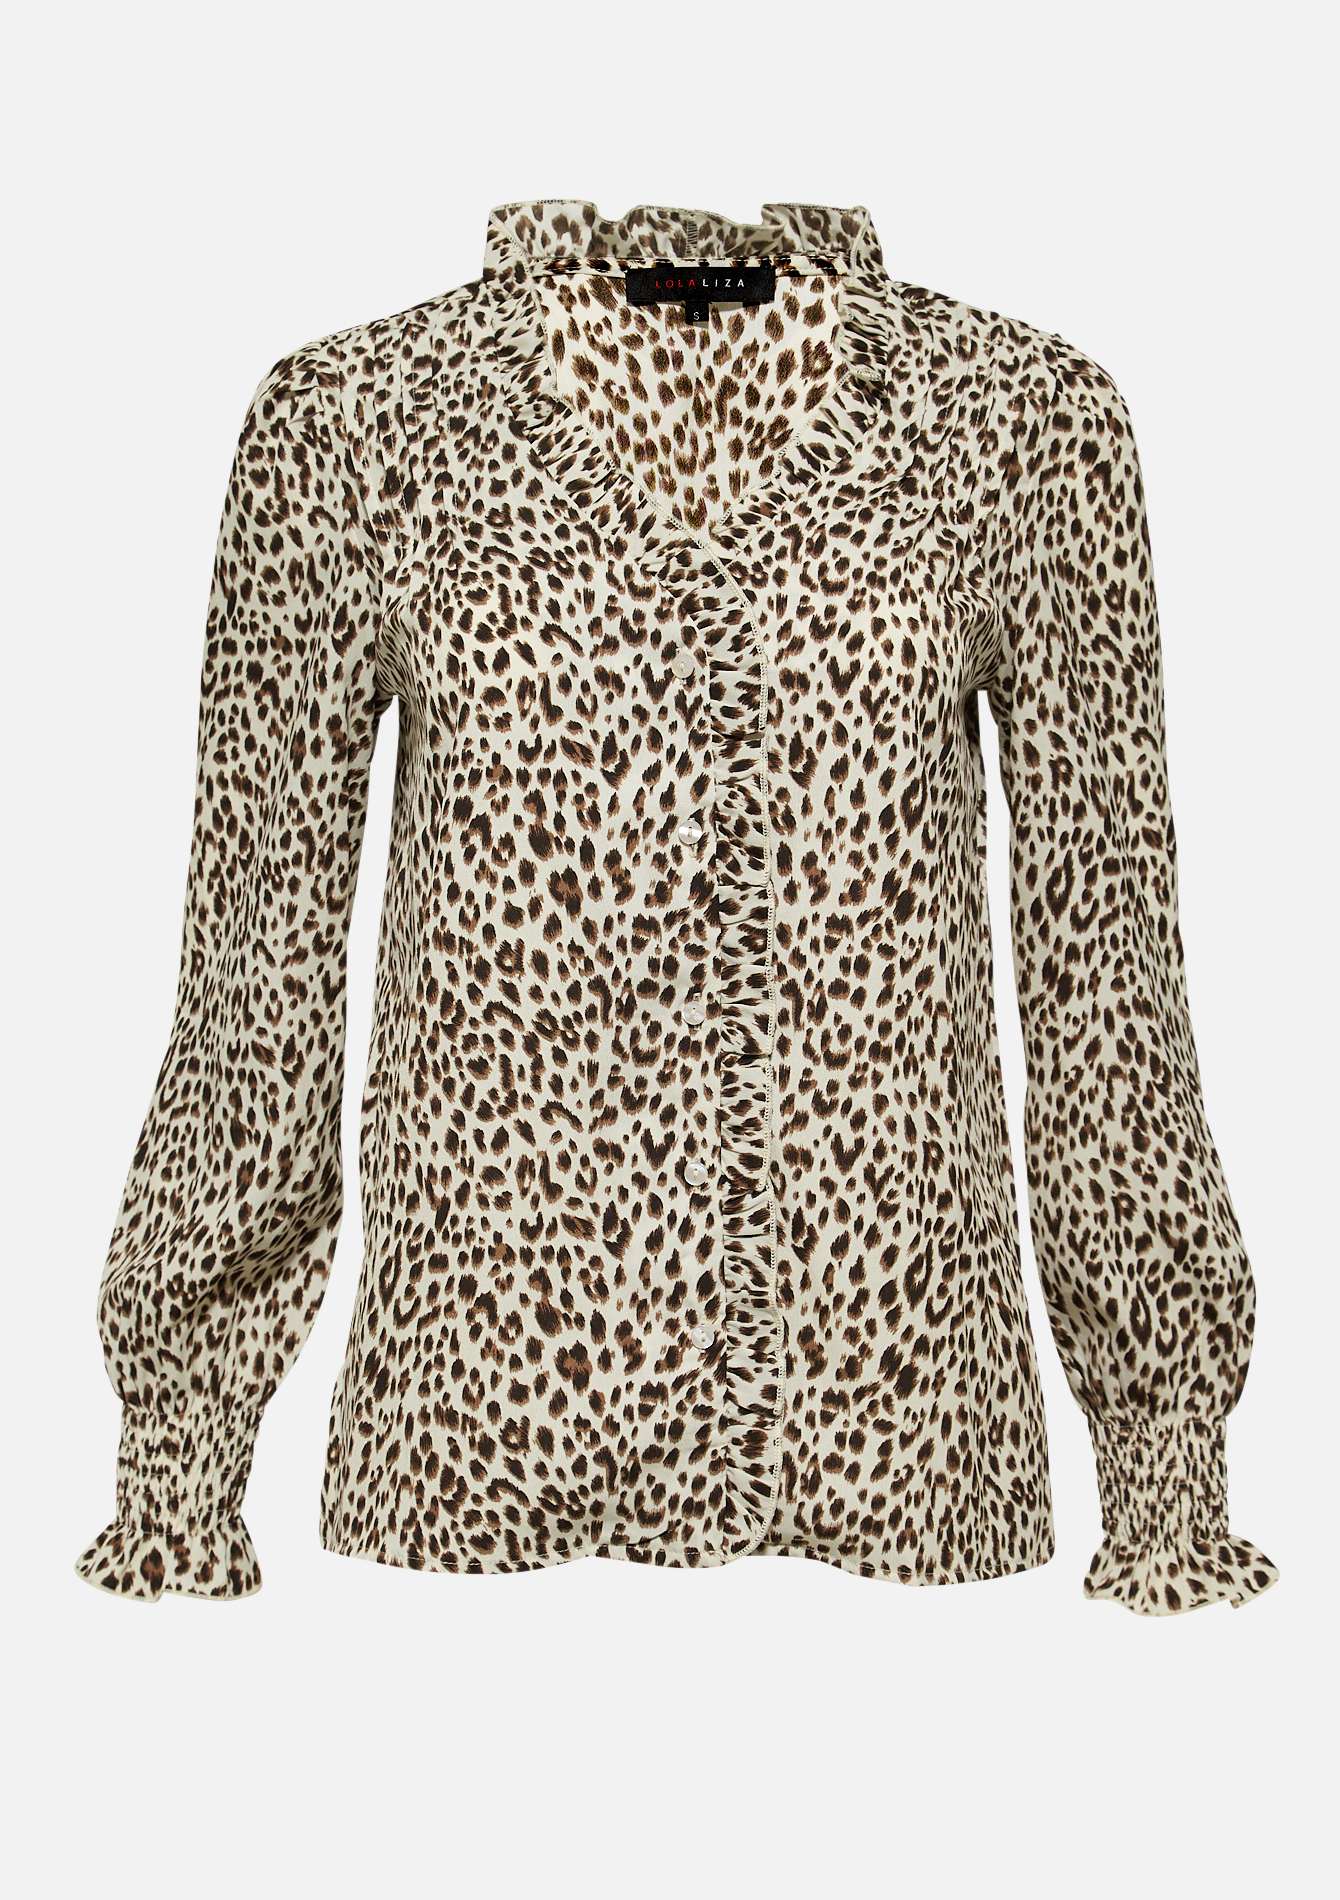 Blouse with ruffles and leopard print - OFFWHITE - 05701553_1001